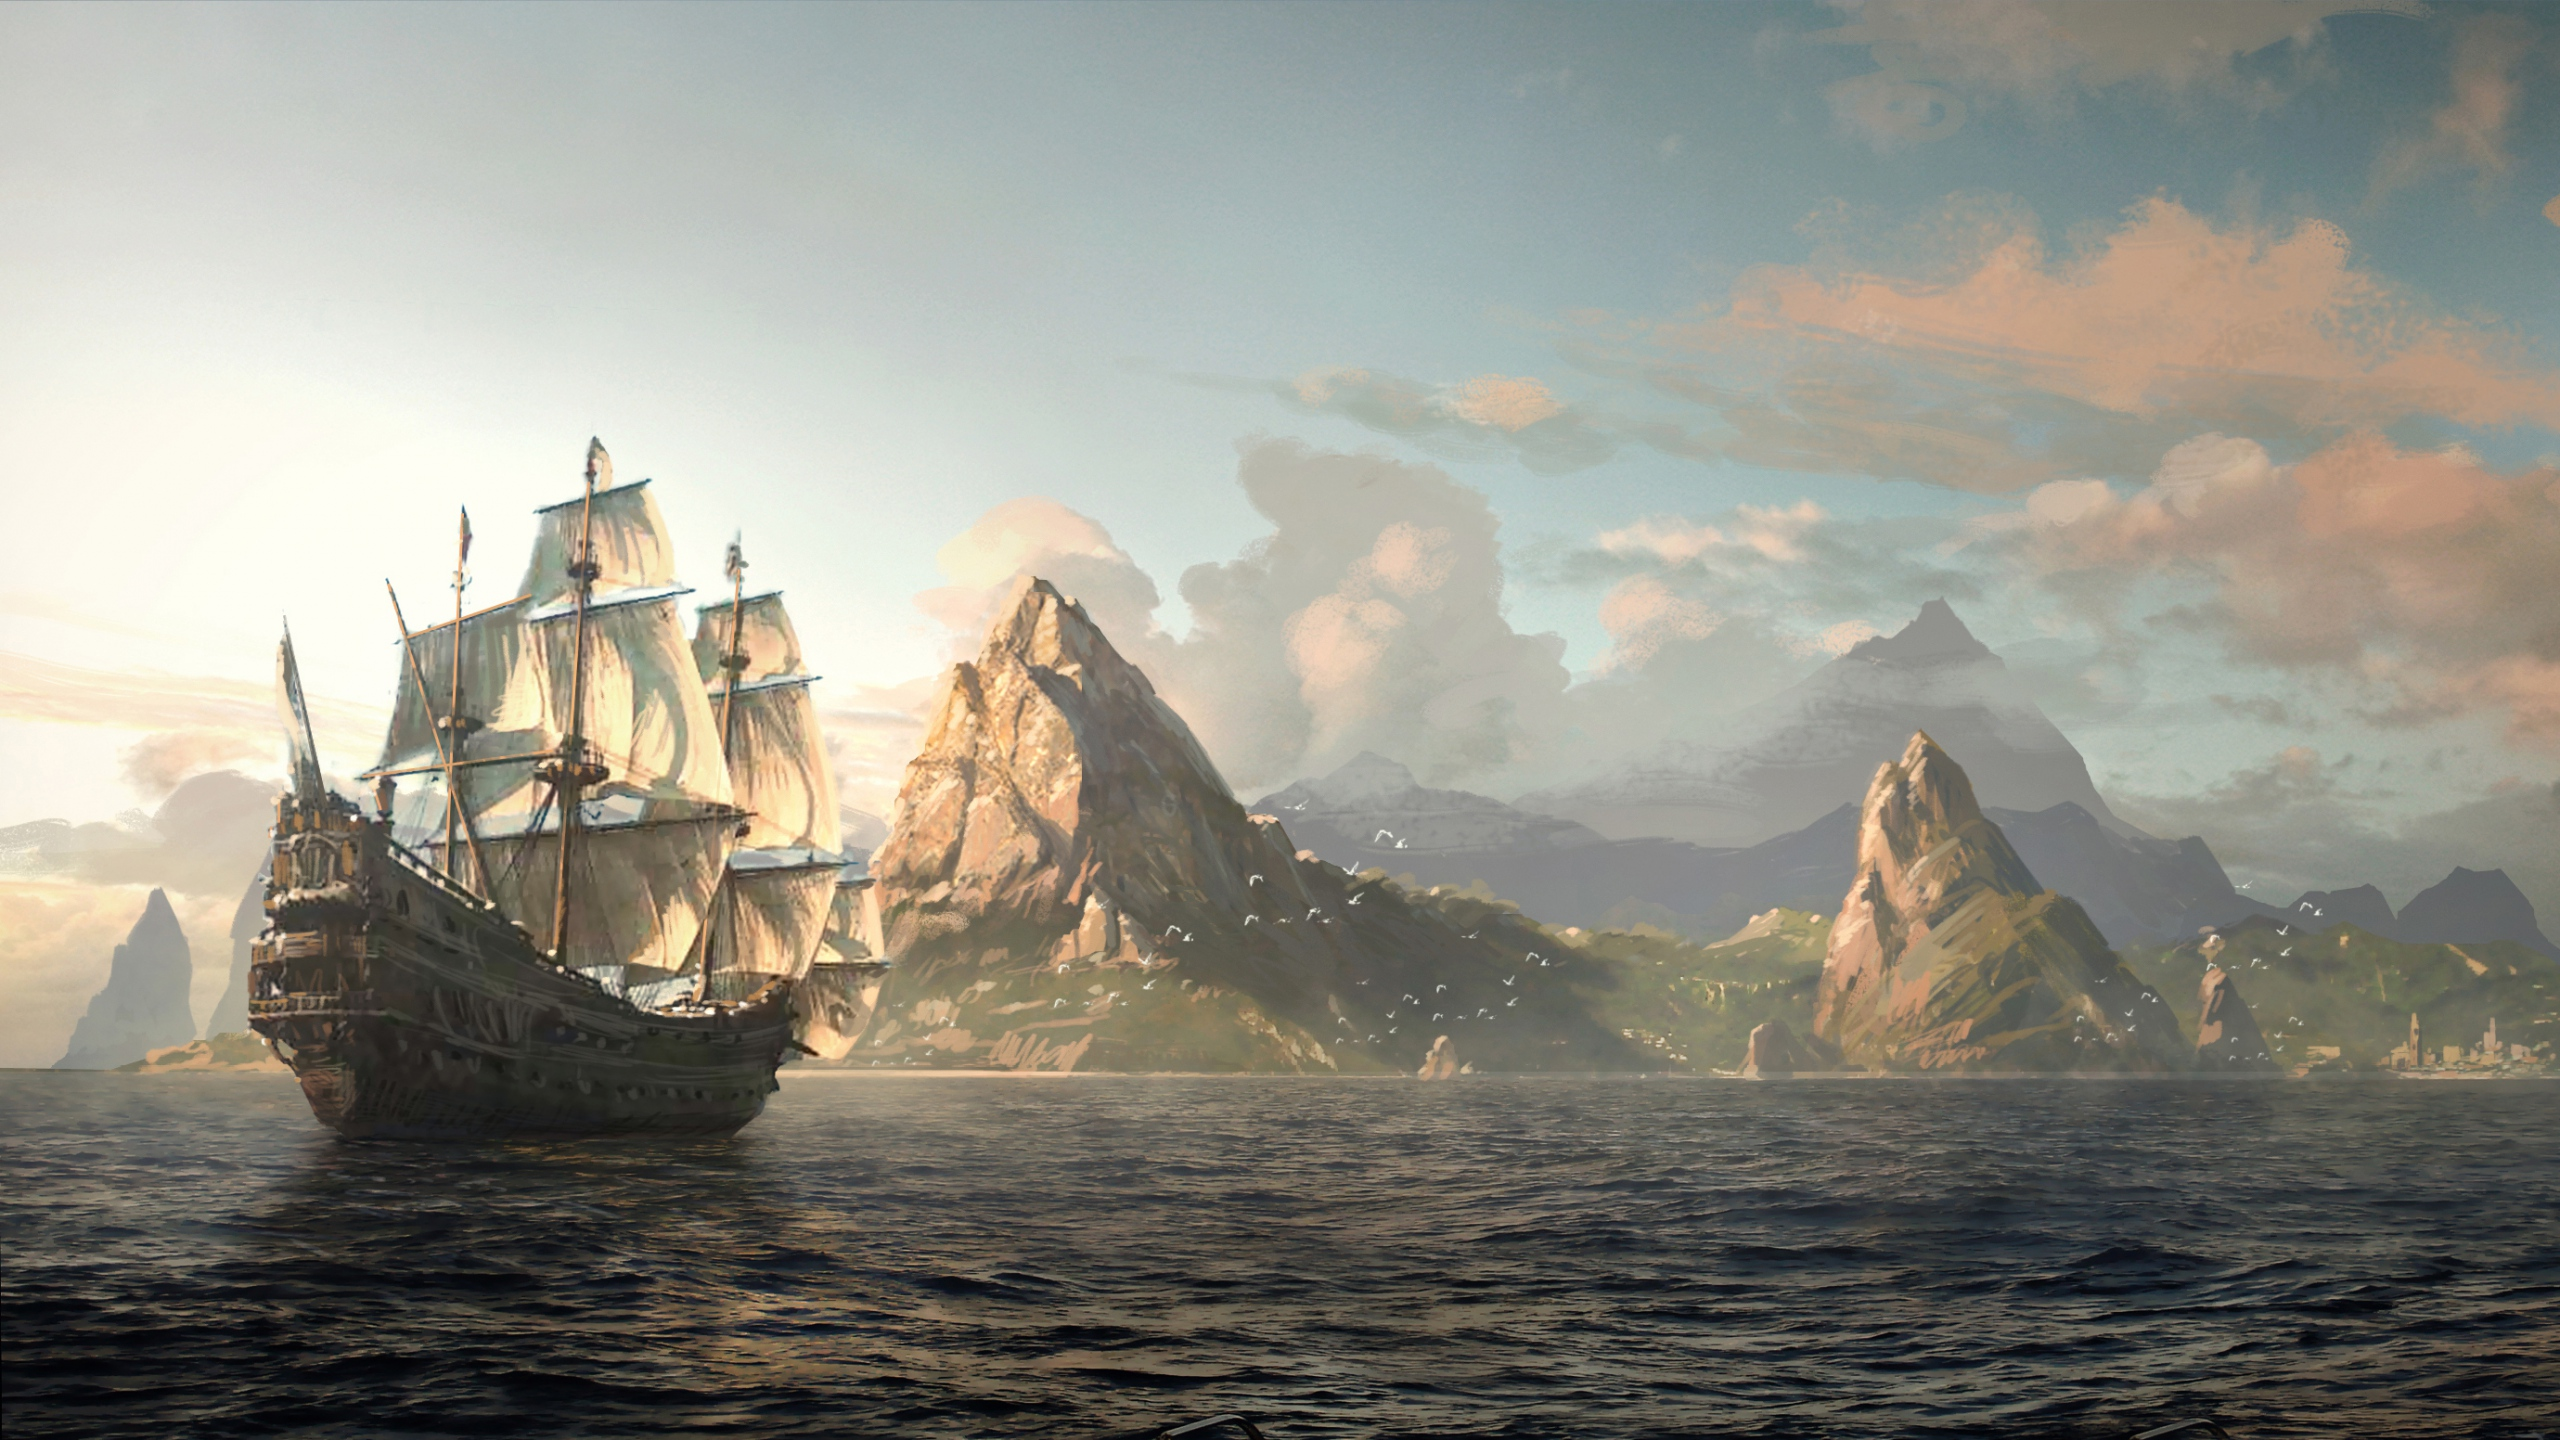 Assassins creed iv black flag assassin pirate edward kenway 95415 2560x1440